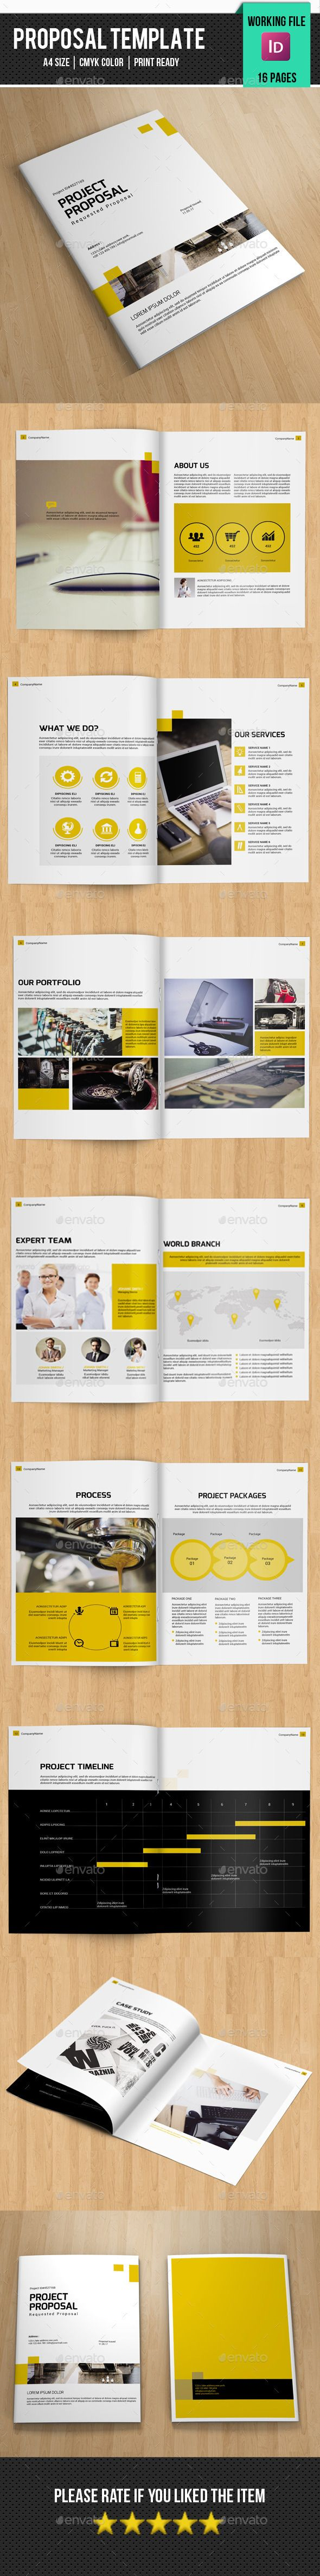 "Check out this @Behance project: ""Business Project Proposal Template"" https://www.behance.net/gallery/44608543/Business-Project-Proposal-Template"